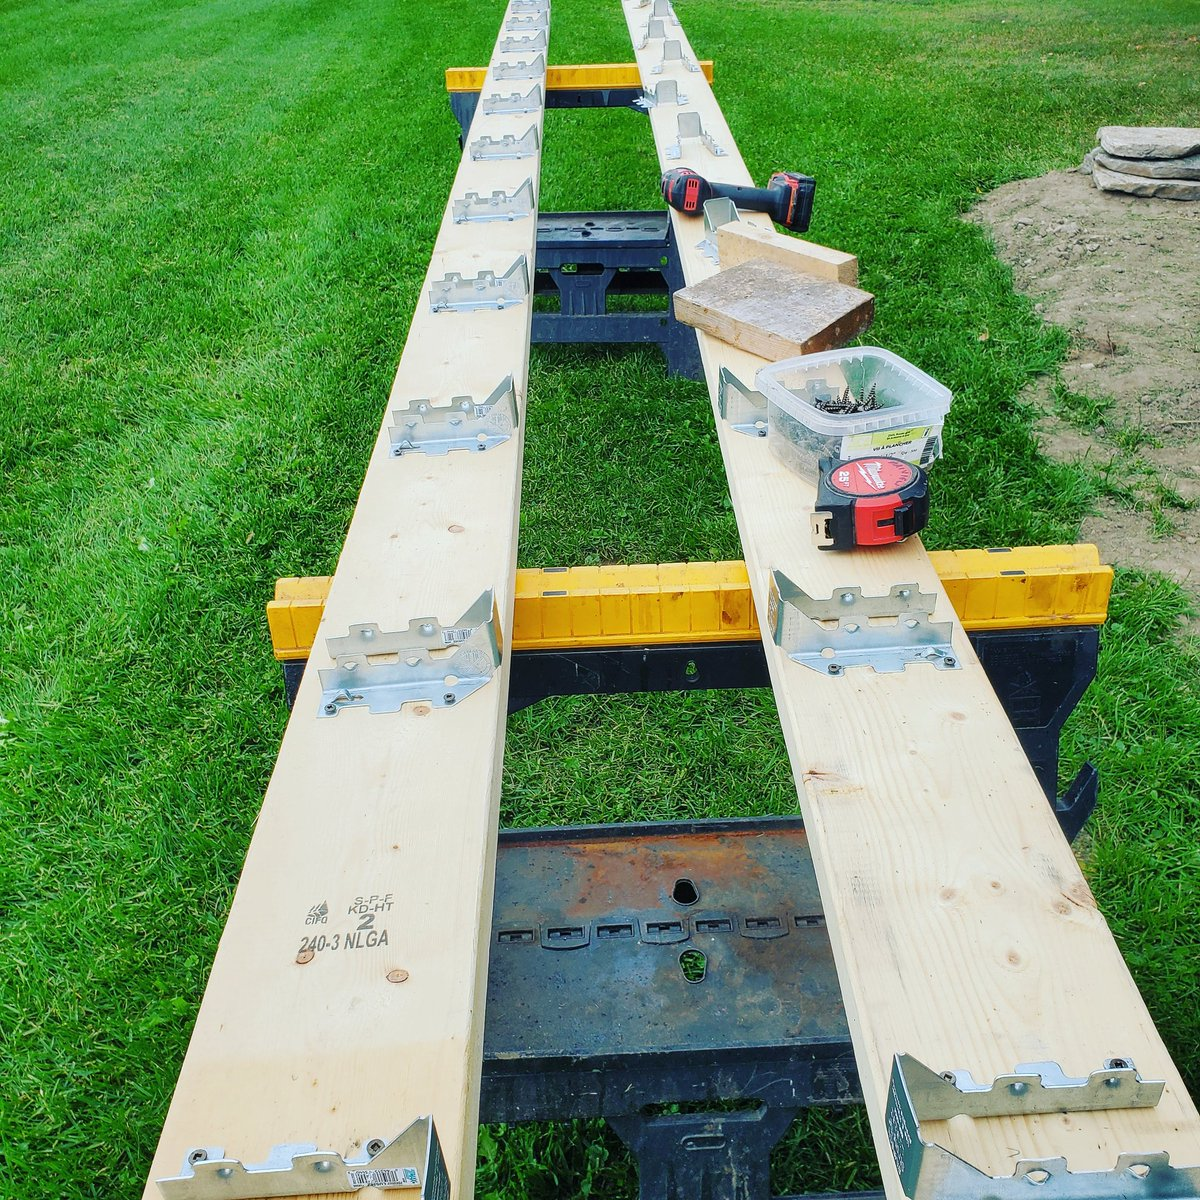 Joist hangers are on - ready to make a floor!  #sheshed #AprilsGetaway #outdooroffice #soexcited https://t.co/3loQMQIz59